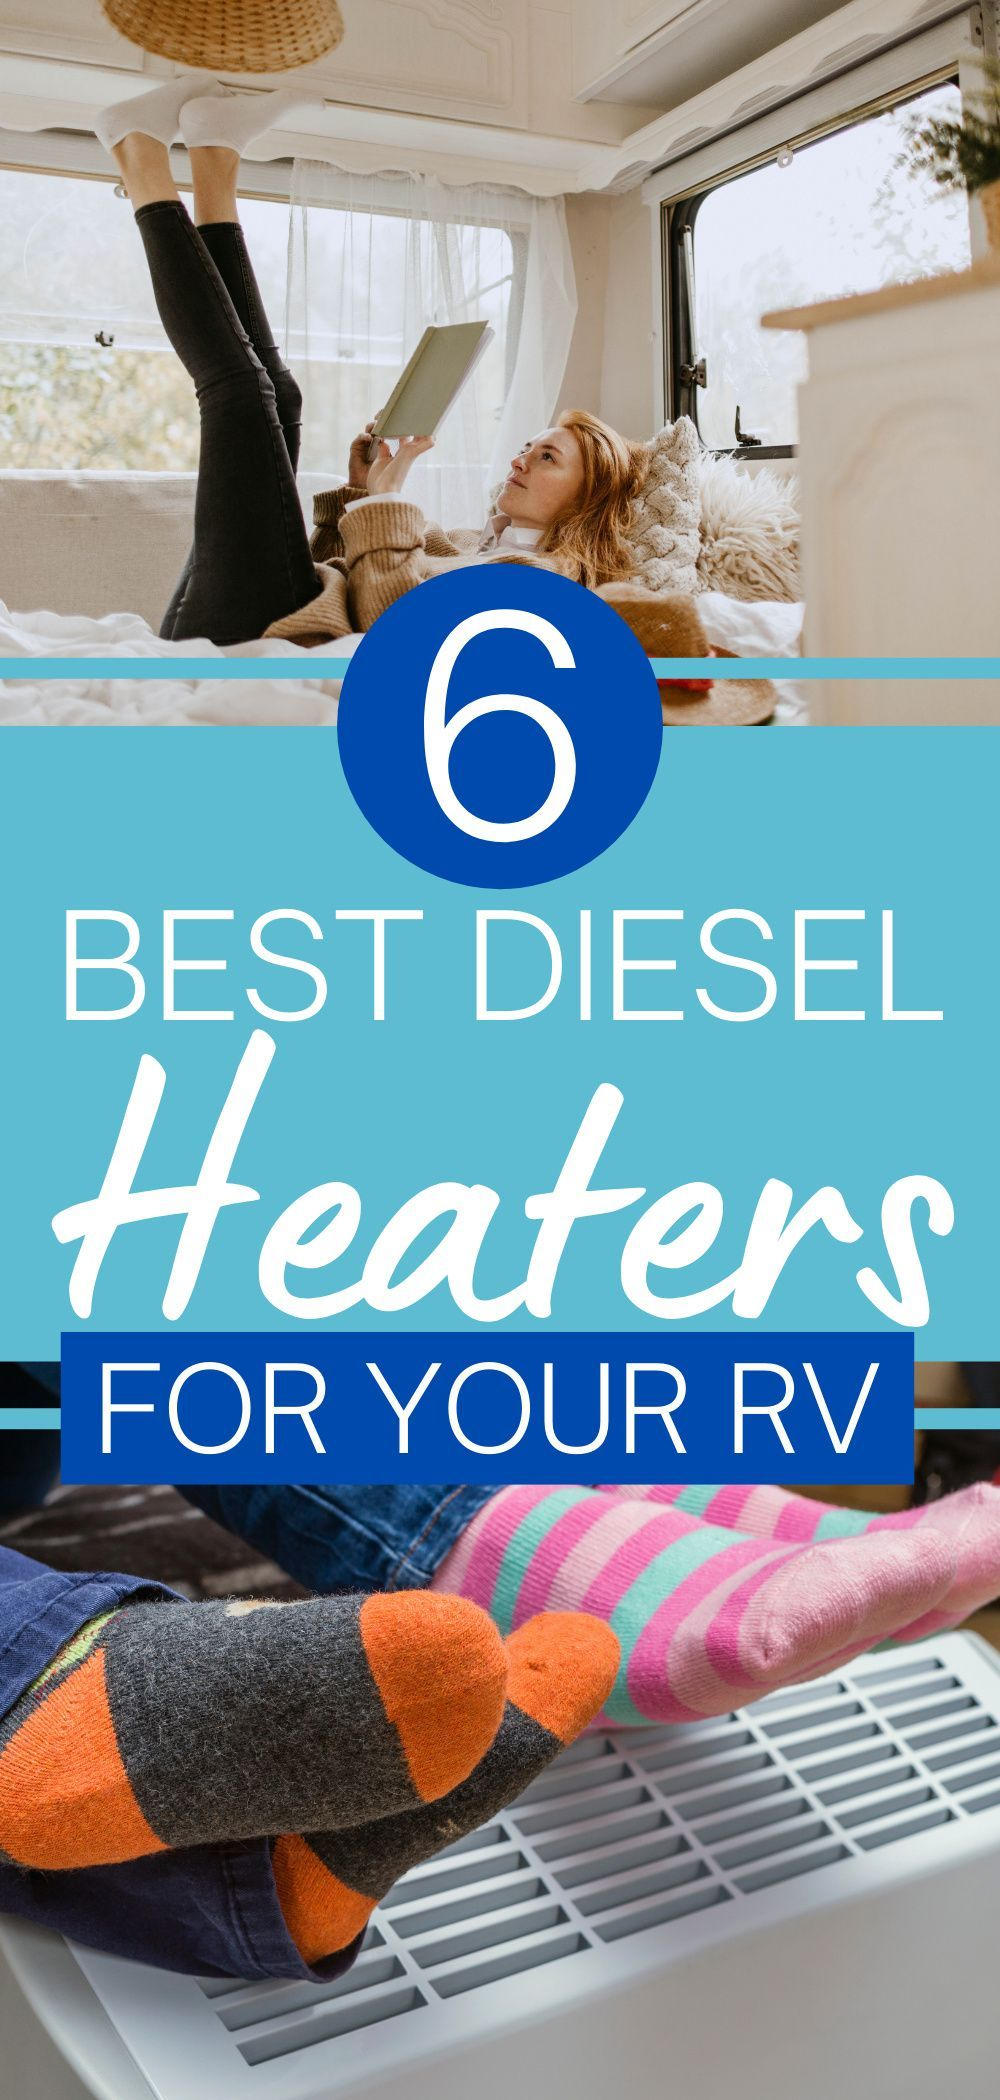 The Best Diesel Heaters for Campervans & RVs _ A Buyer's Guide on Pinterest